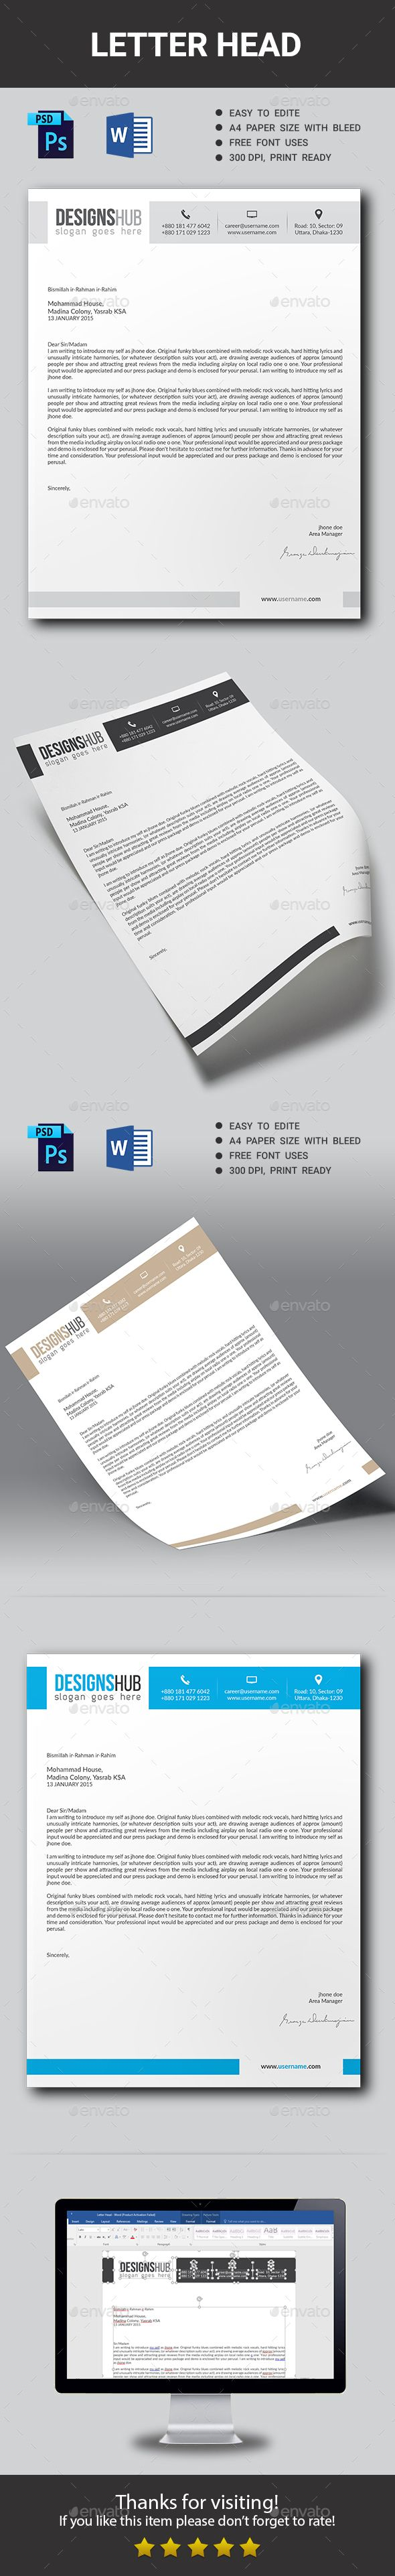 Corporate Letter Head Stationery Print Templates